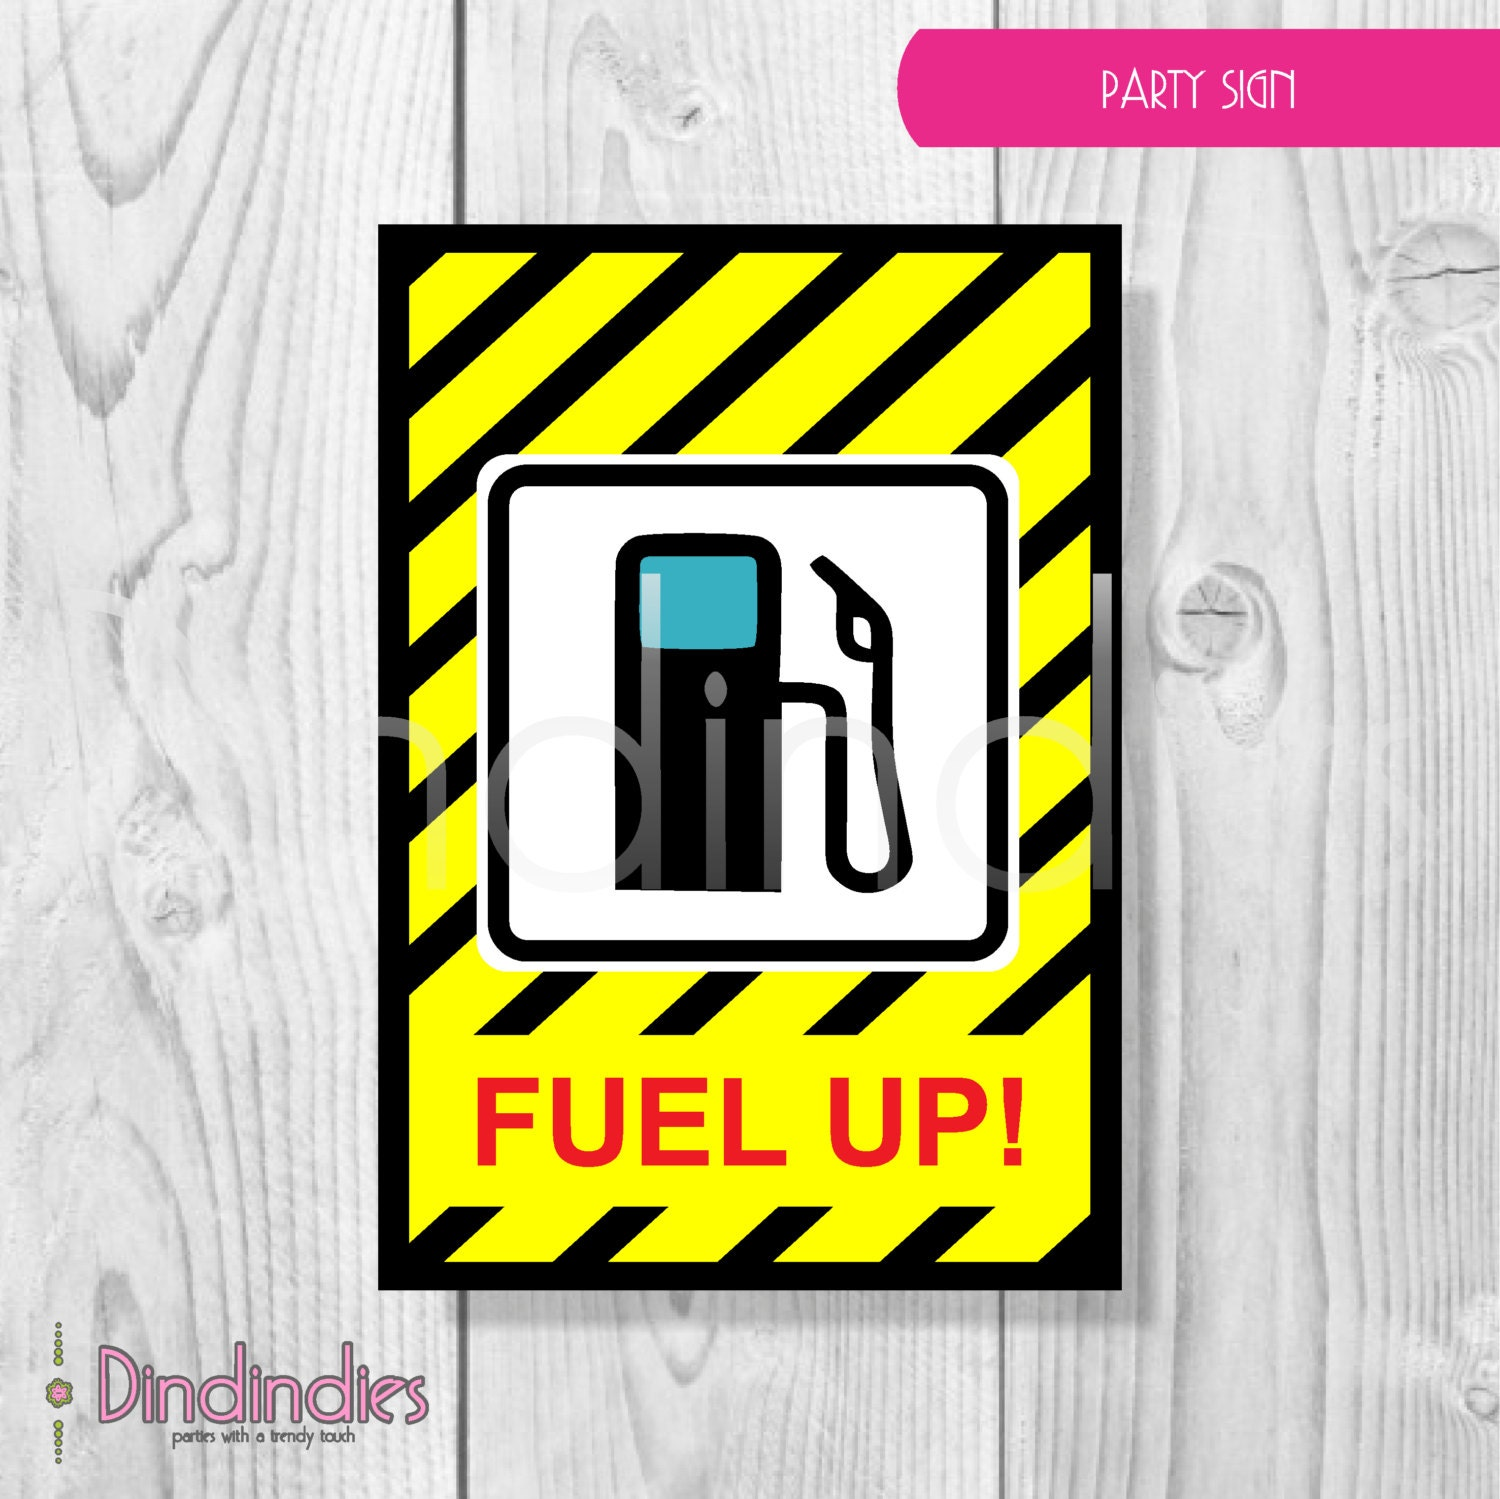 Birthday Sign Ups: Construction Birthday Party Sign Fuel Up Party Sign By